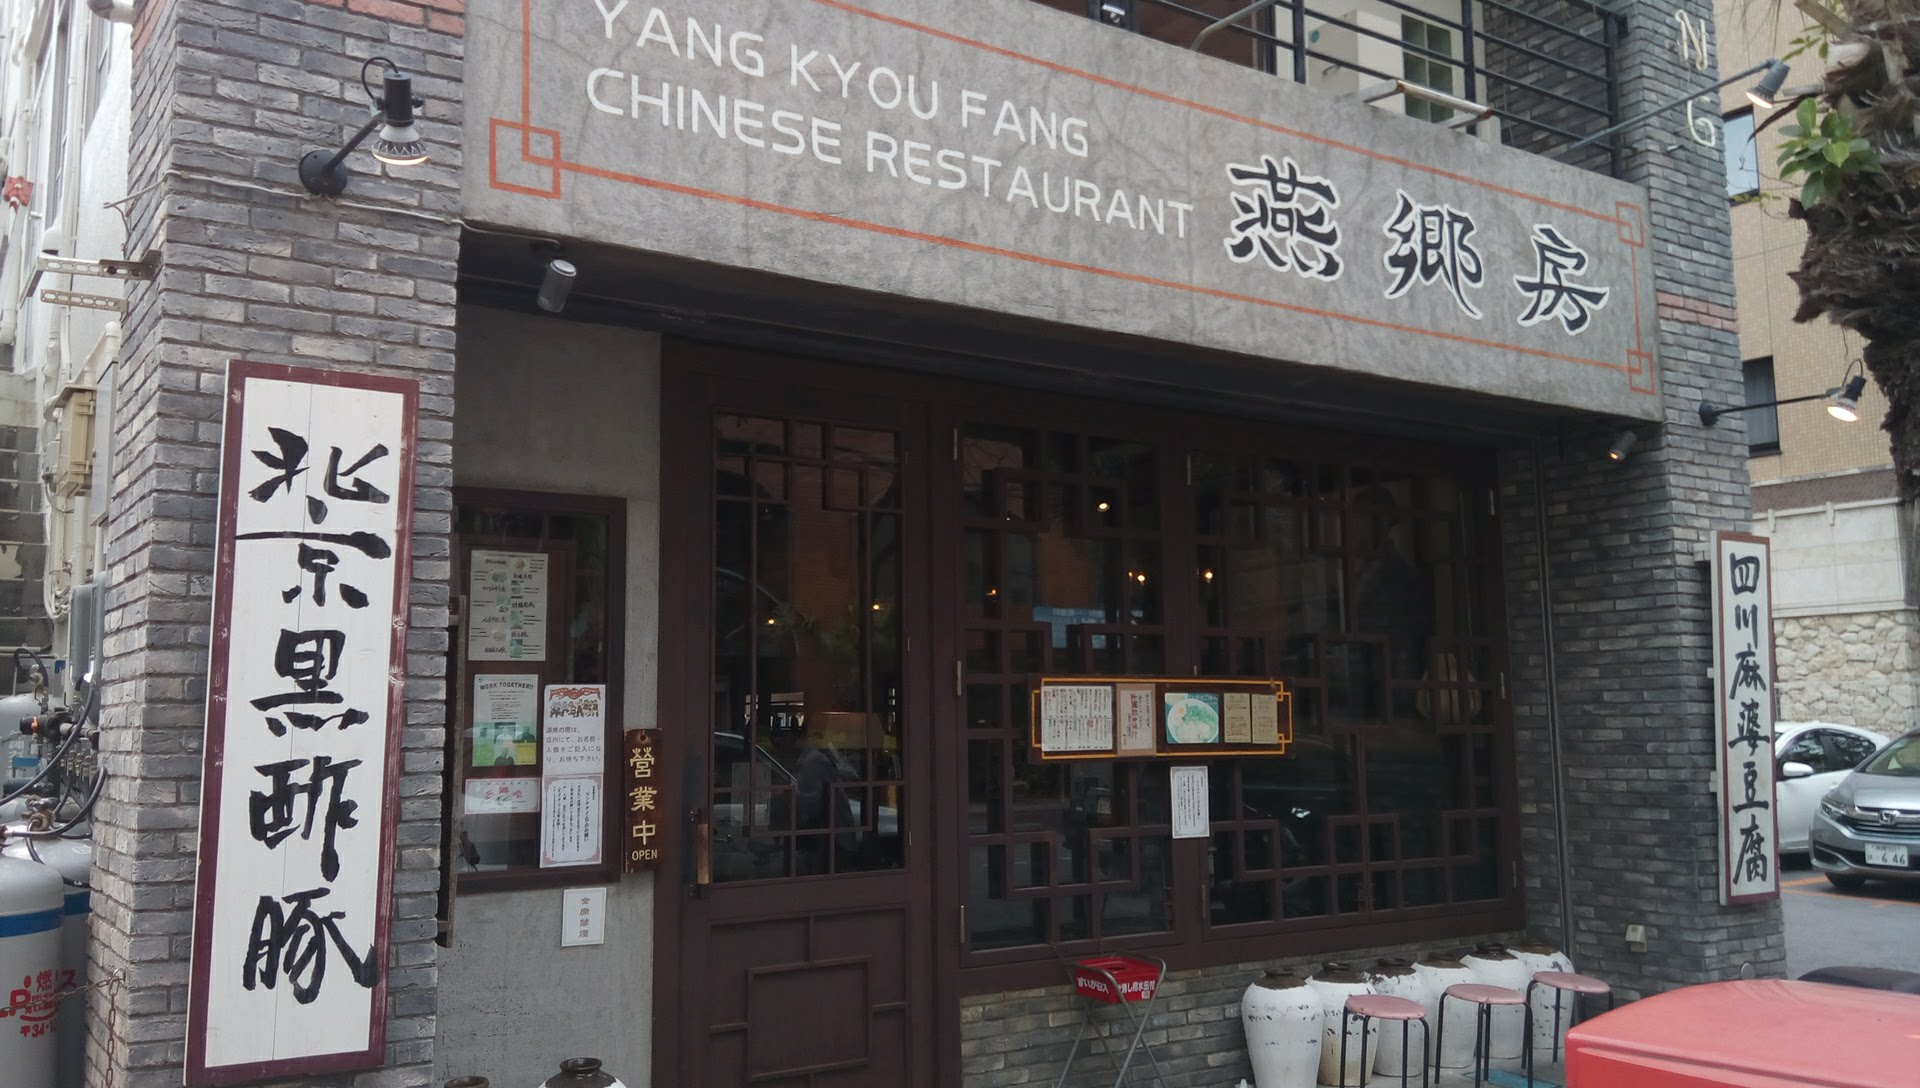 If you want to eat delicious Chinese cuisine, Yang Kyou Fang in Naha city is recommended! Lunch is good and profitable, plenty of volume